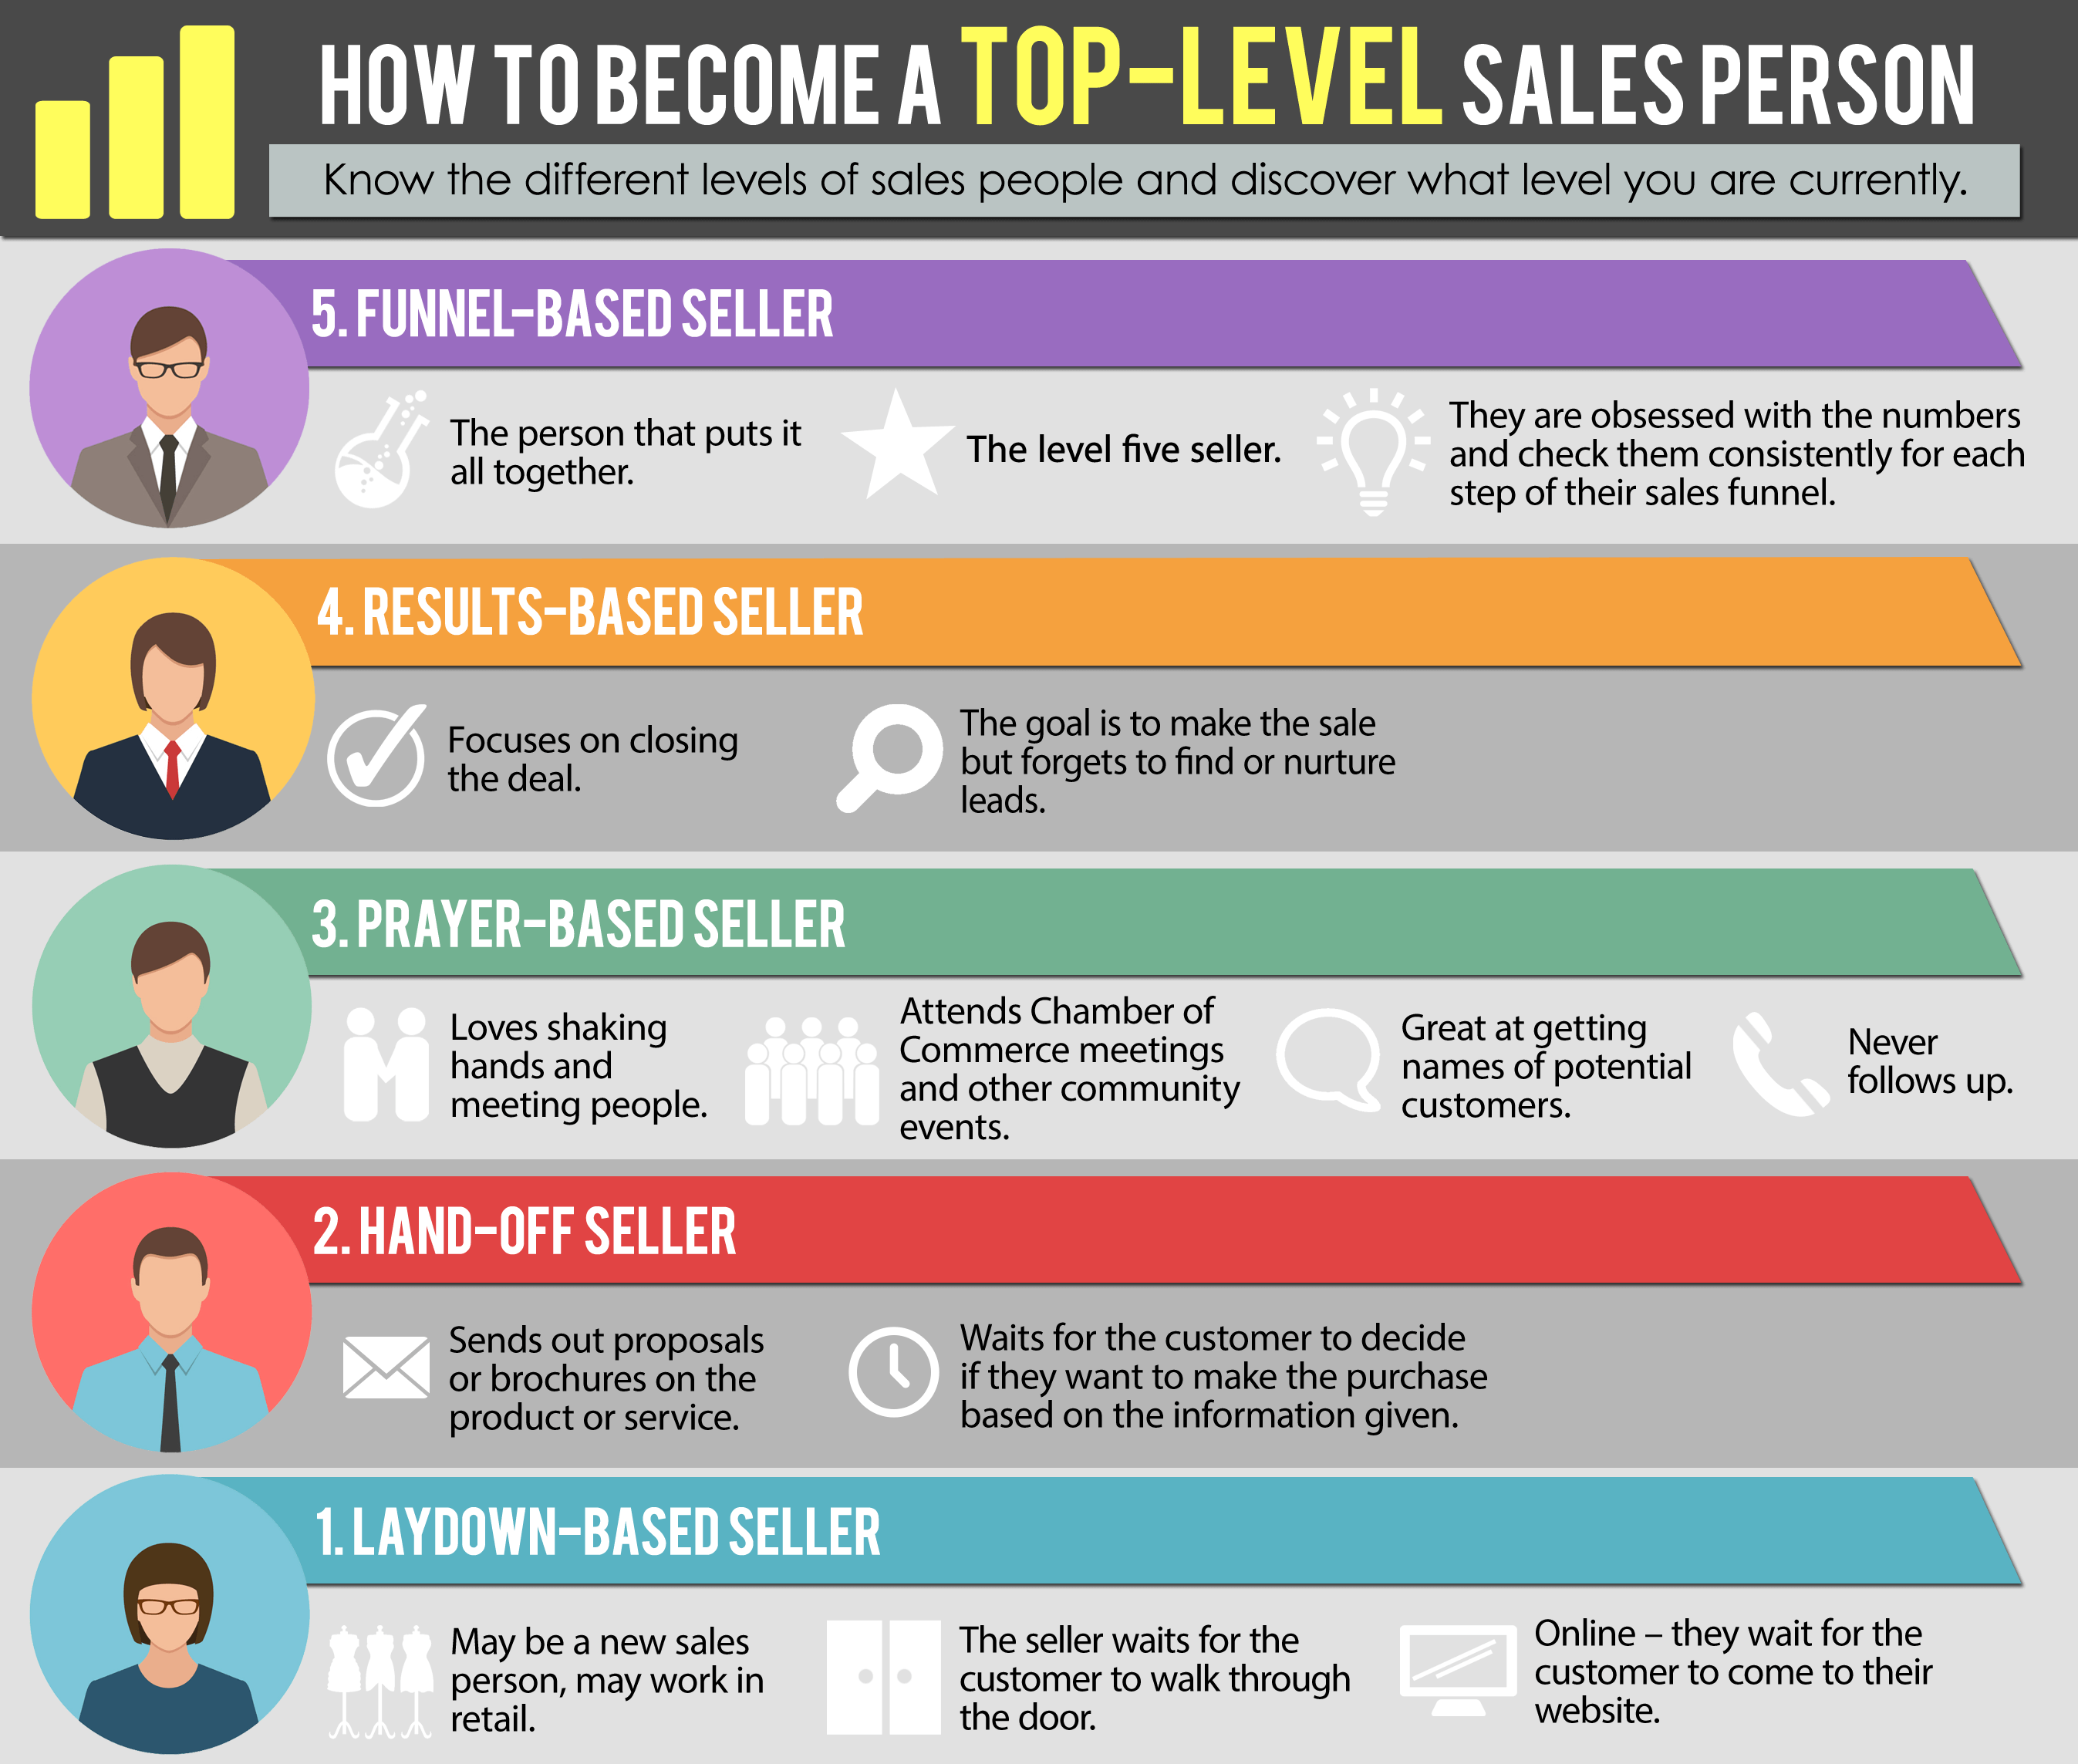 how to become a top level salesperson infographic Image